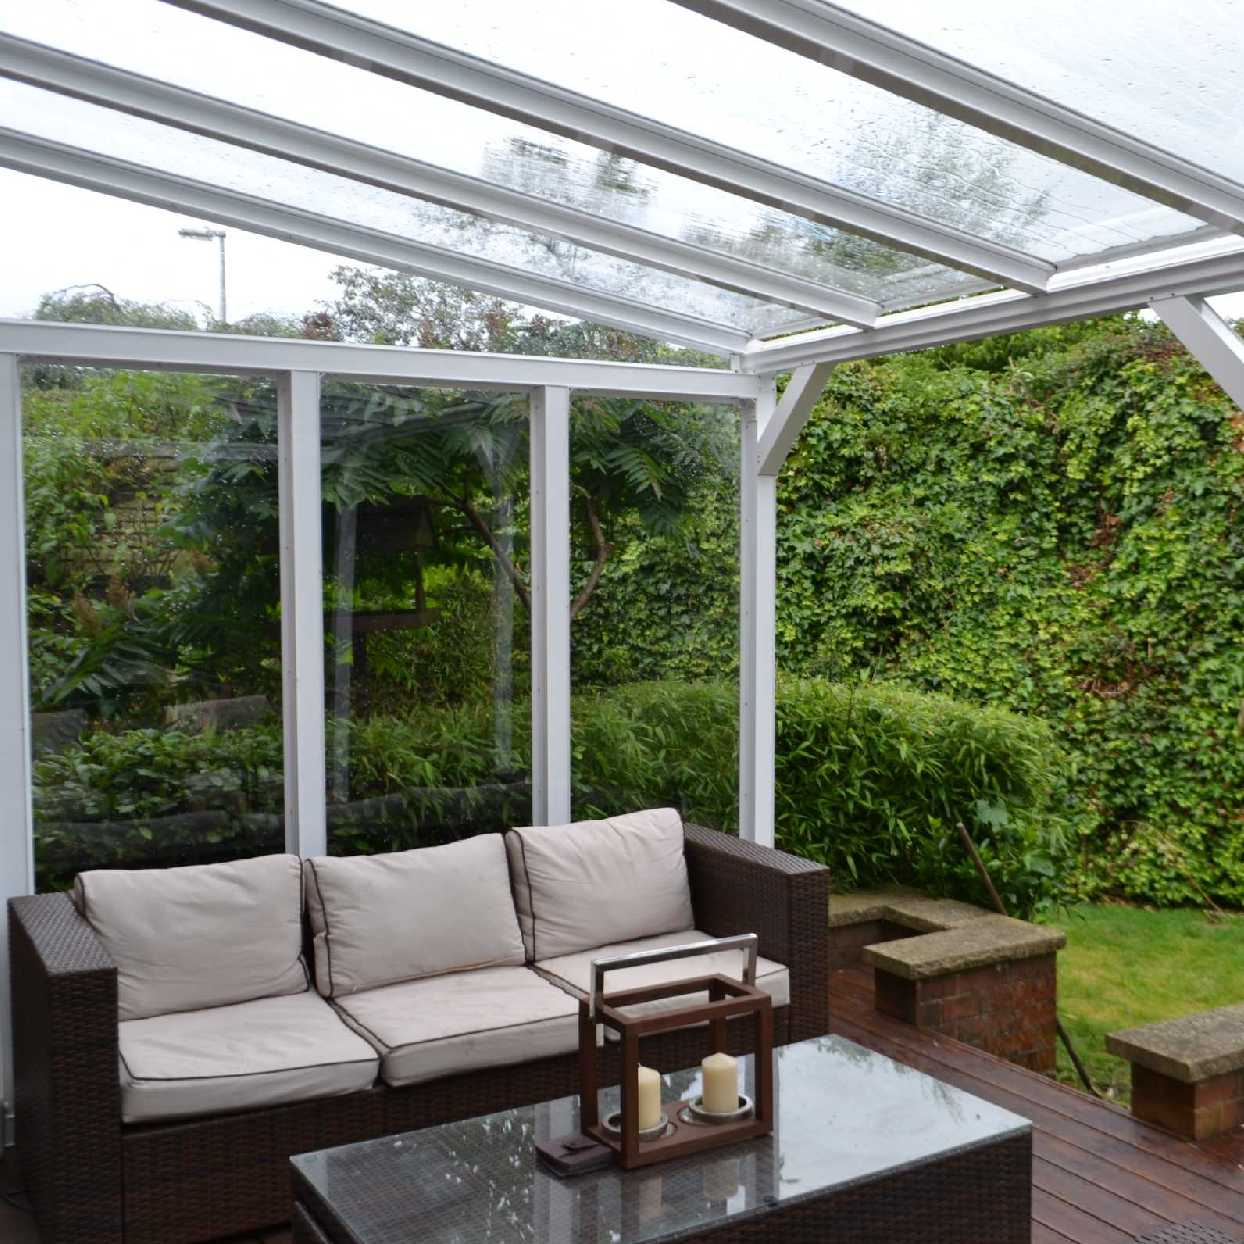 Great selection of Omega Smart Lean-To Canopy with 16mm Polycarbonate Glazing - 6.3m (W) x 4.0m (P), (4) Supporting Posts